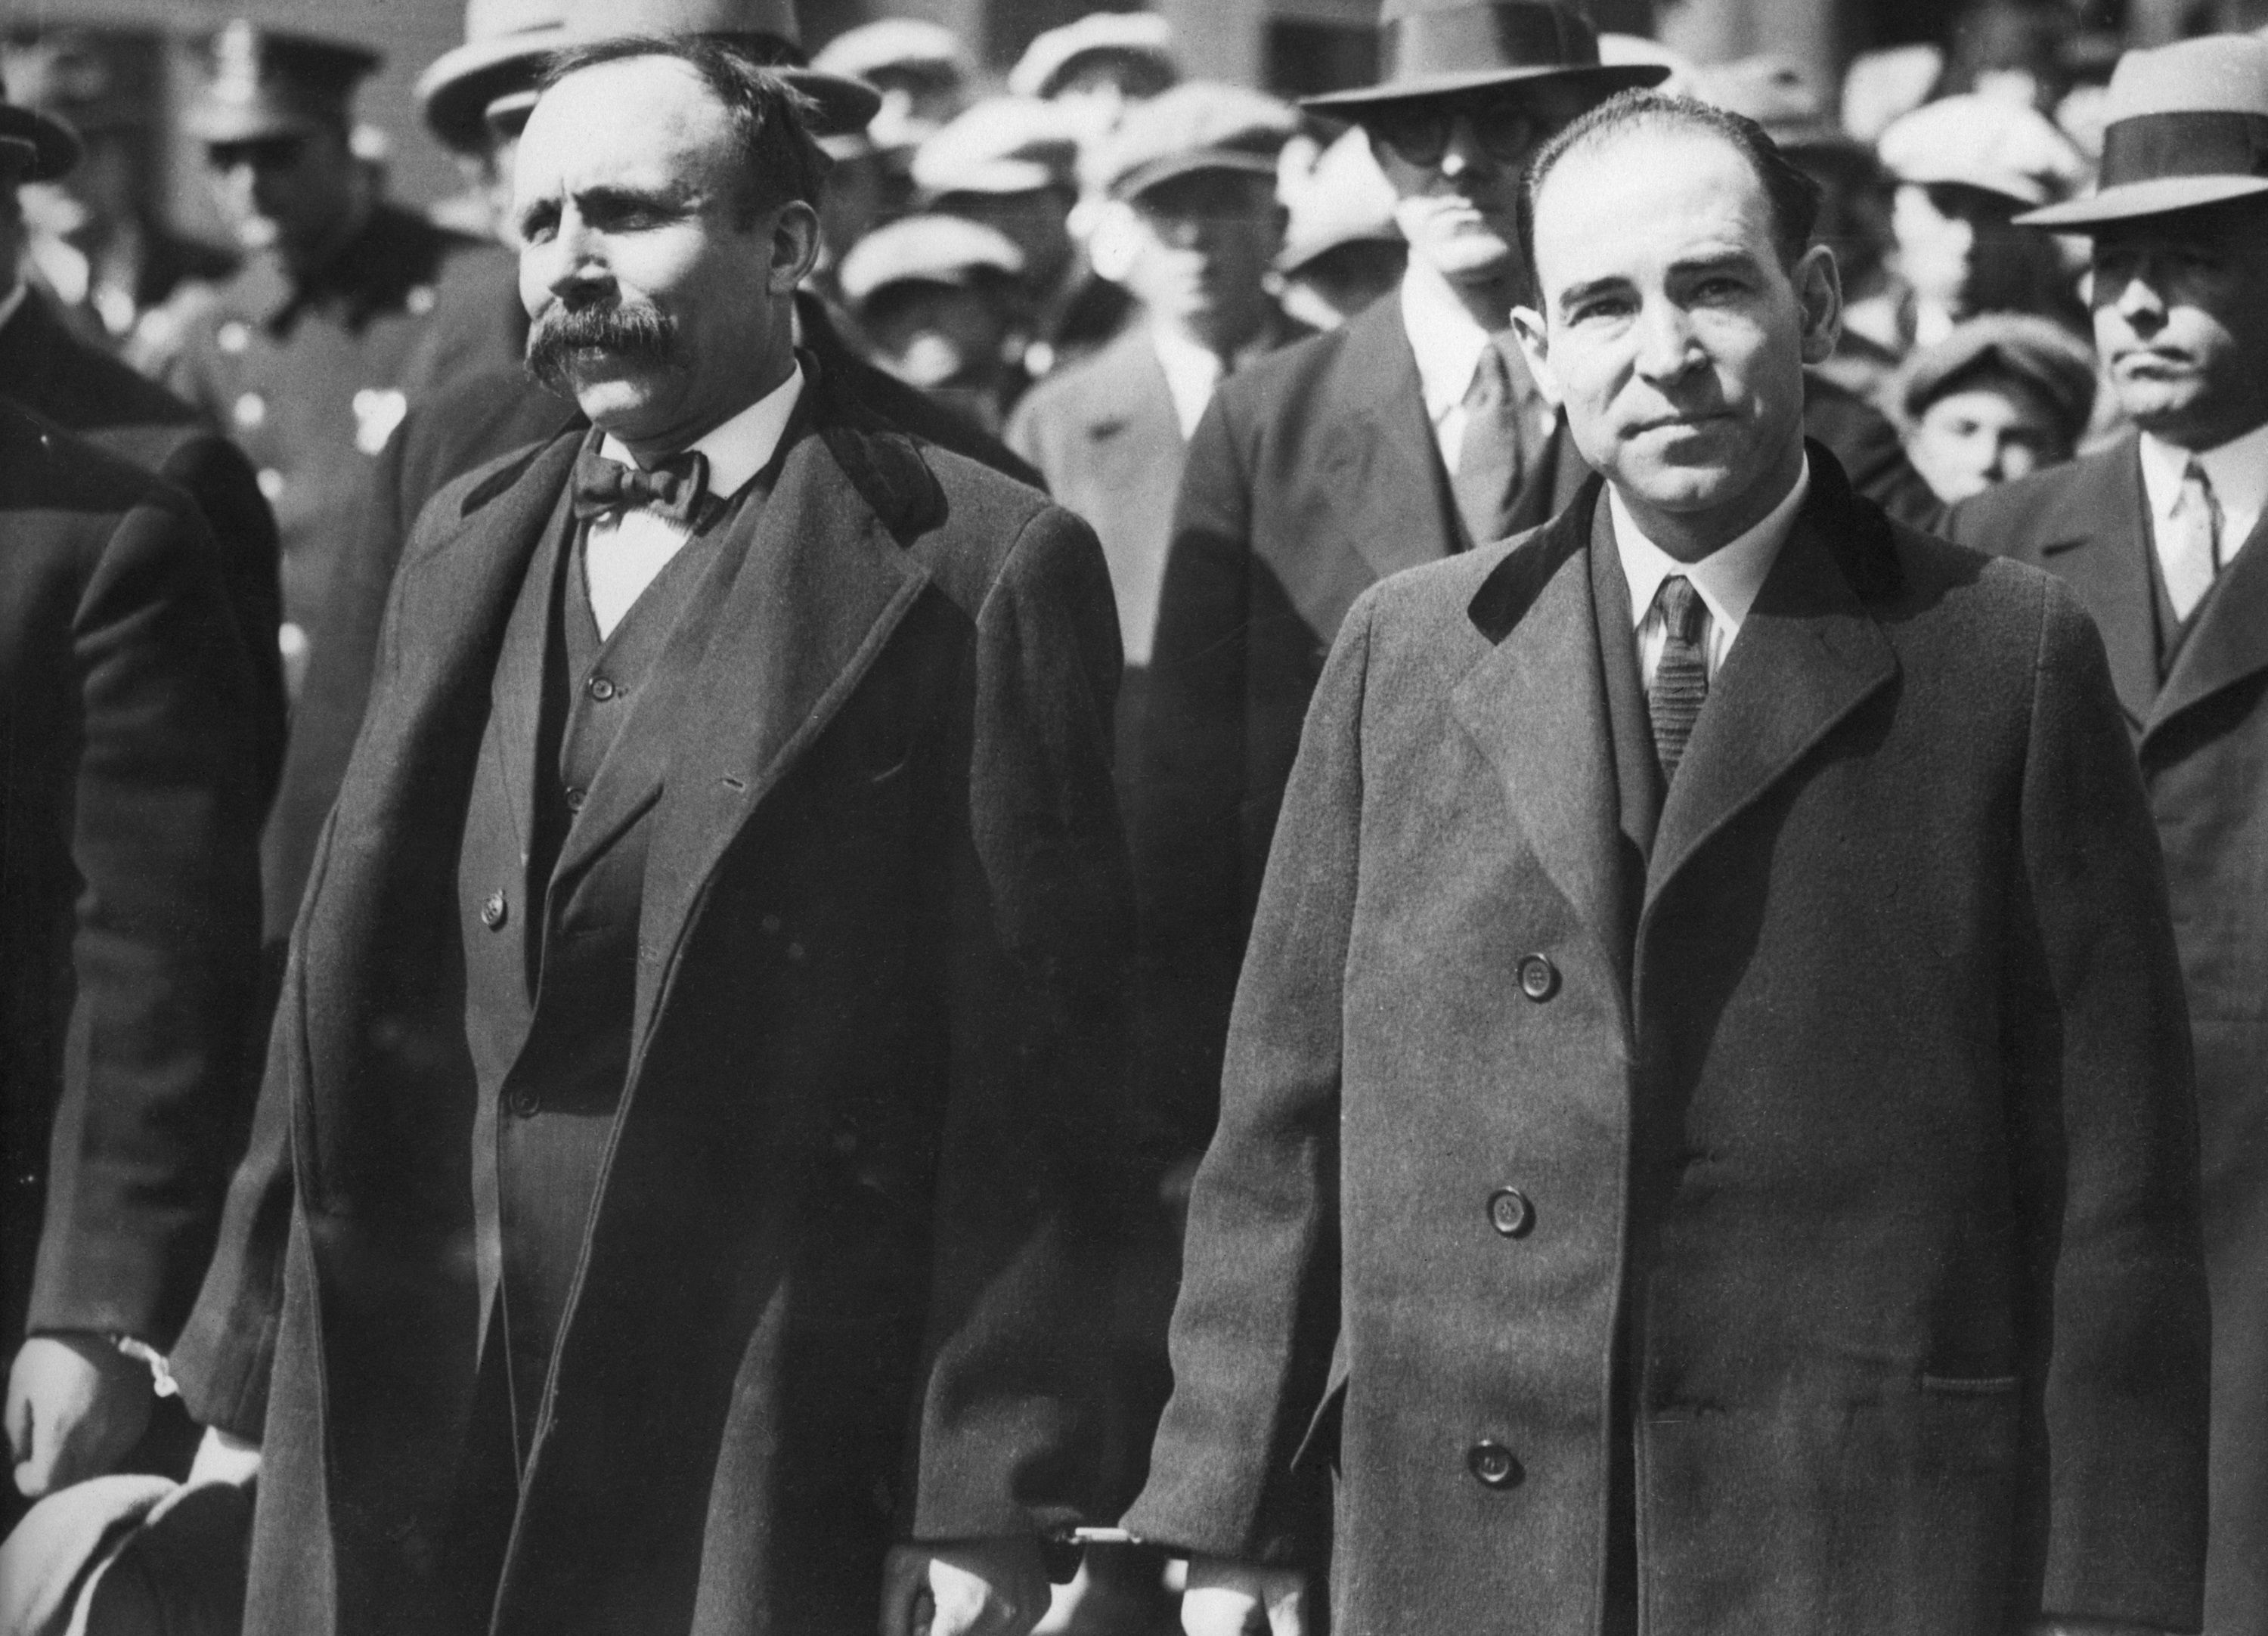 Execution of Sacco and Vanzetti Exposed Prejudice and Injustice